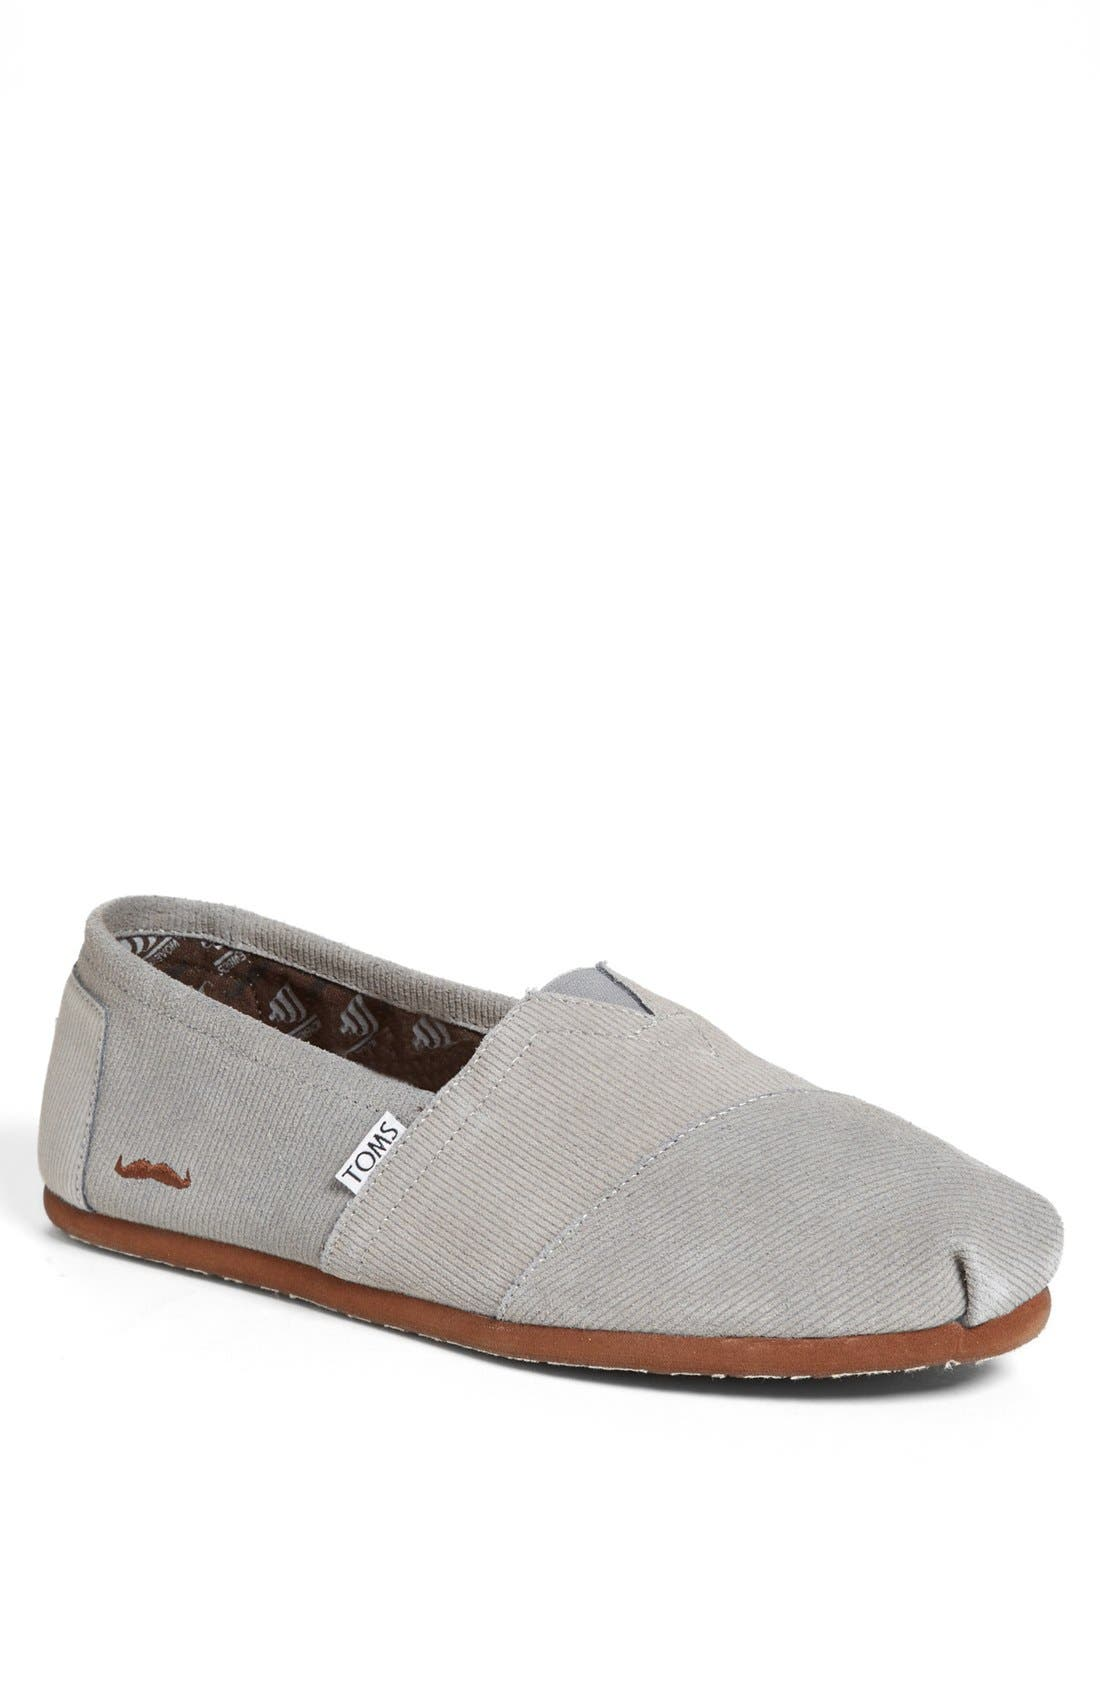 Main Image - TOMS 'Movember Classic' Slip-On (Men) (Limited Edition - Movember)